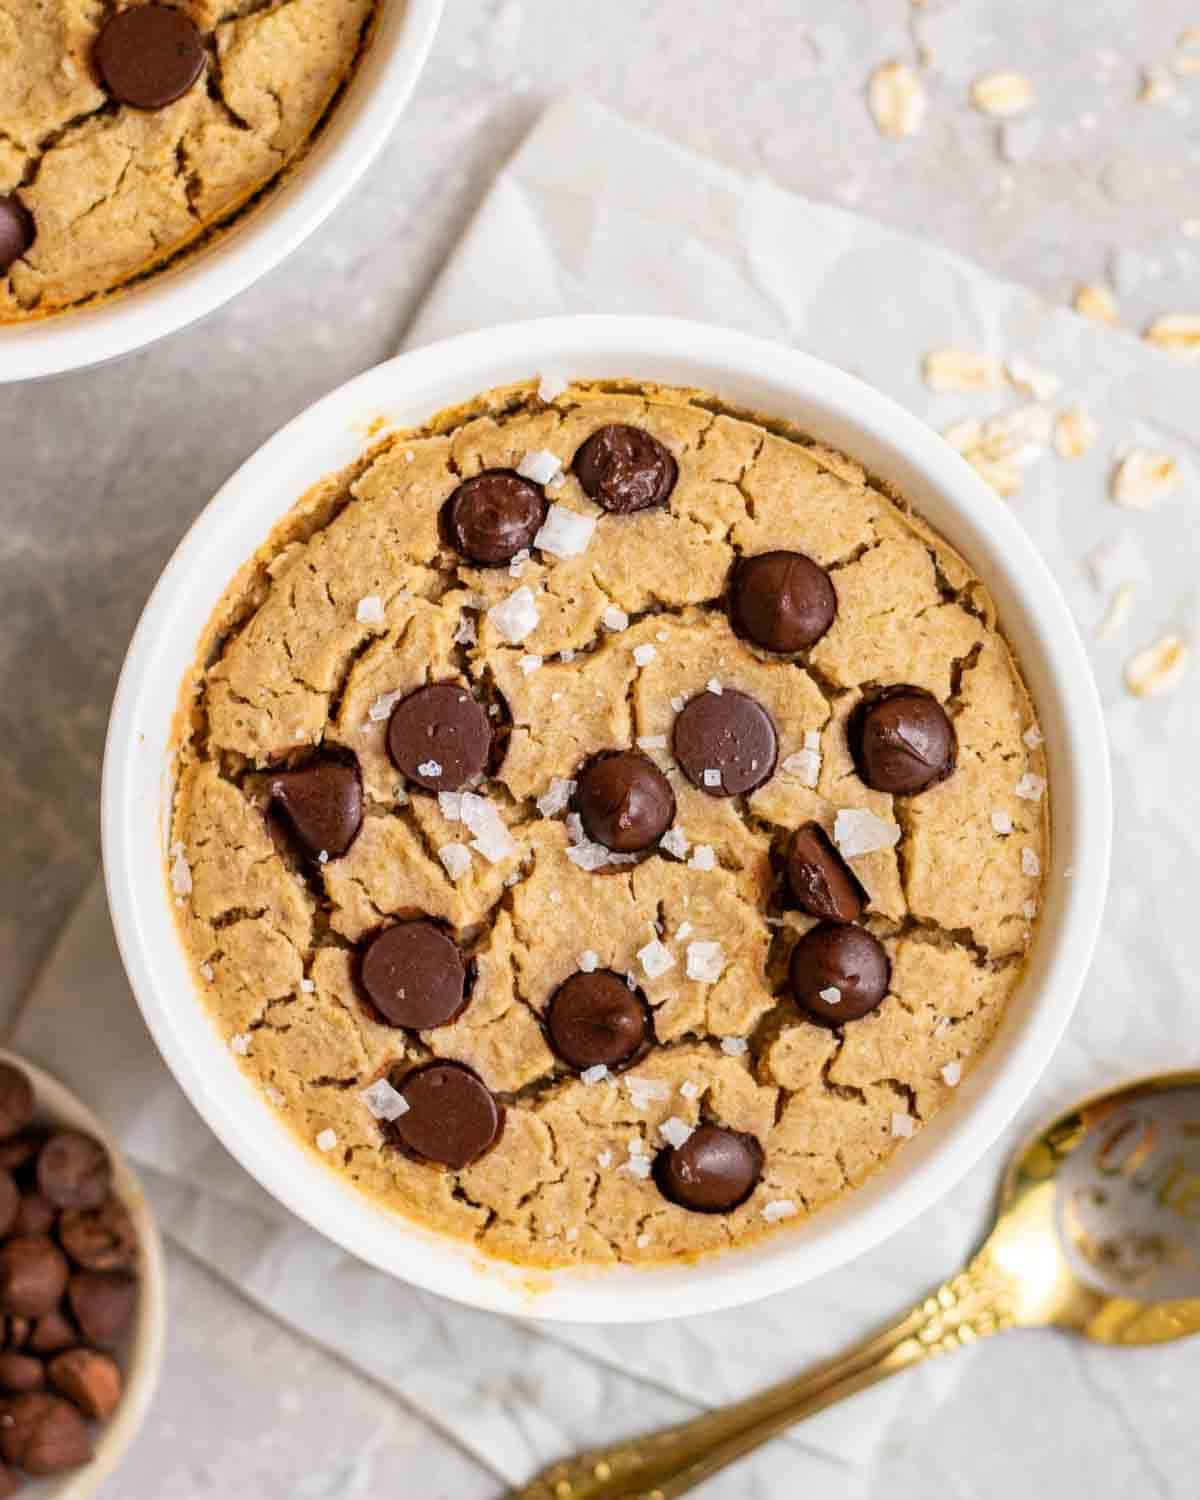 Baked oats in a ramekin topped with chocolate chips and sea salt with spoon beside.